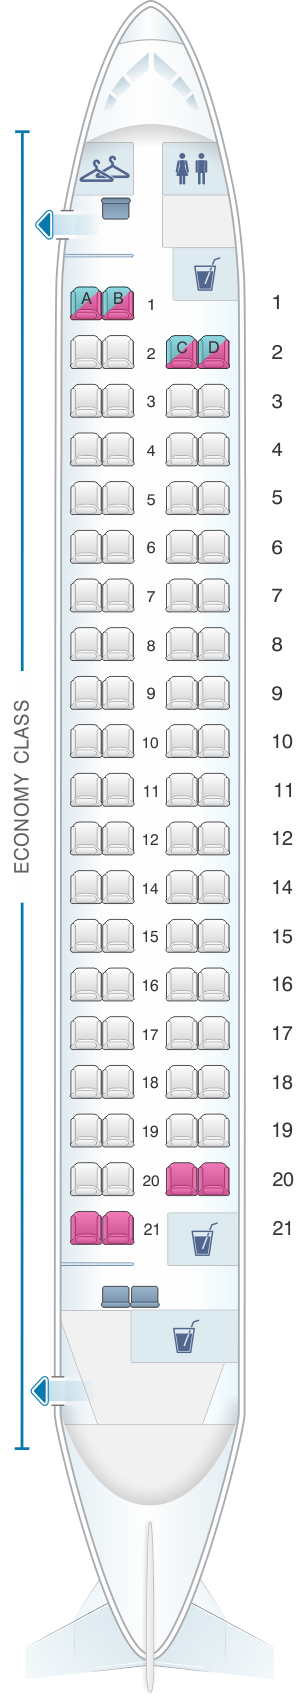 Seat map for Philippine Airlines Bombardier Q400 all economy